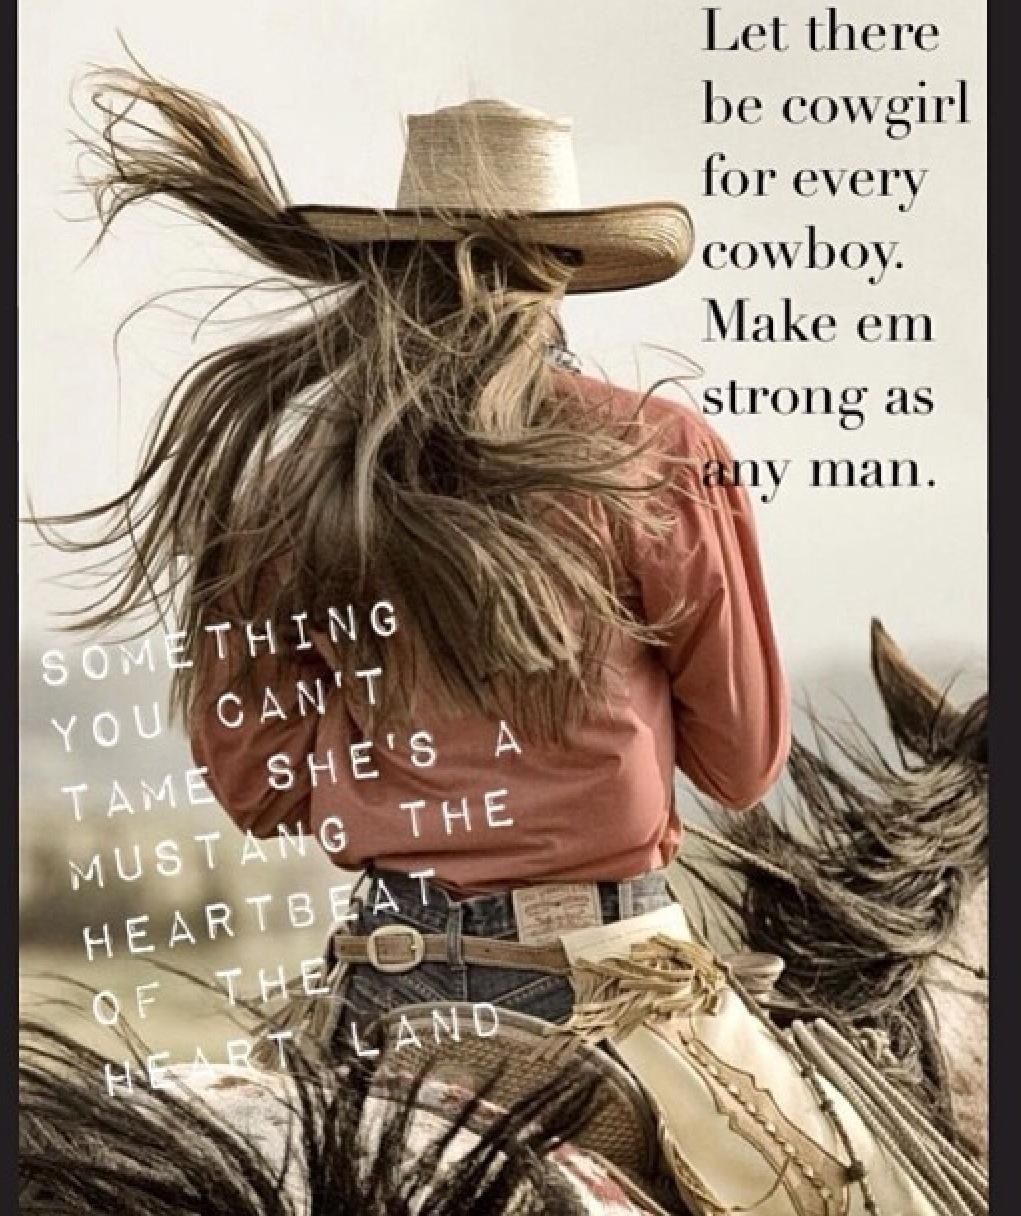 Let There Be Cowgirls Quotes. QuotesGram